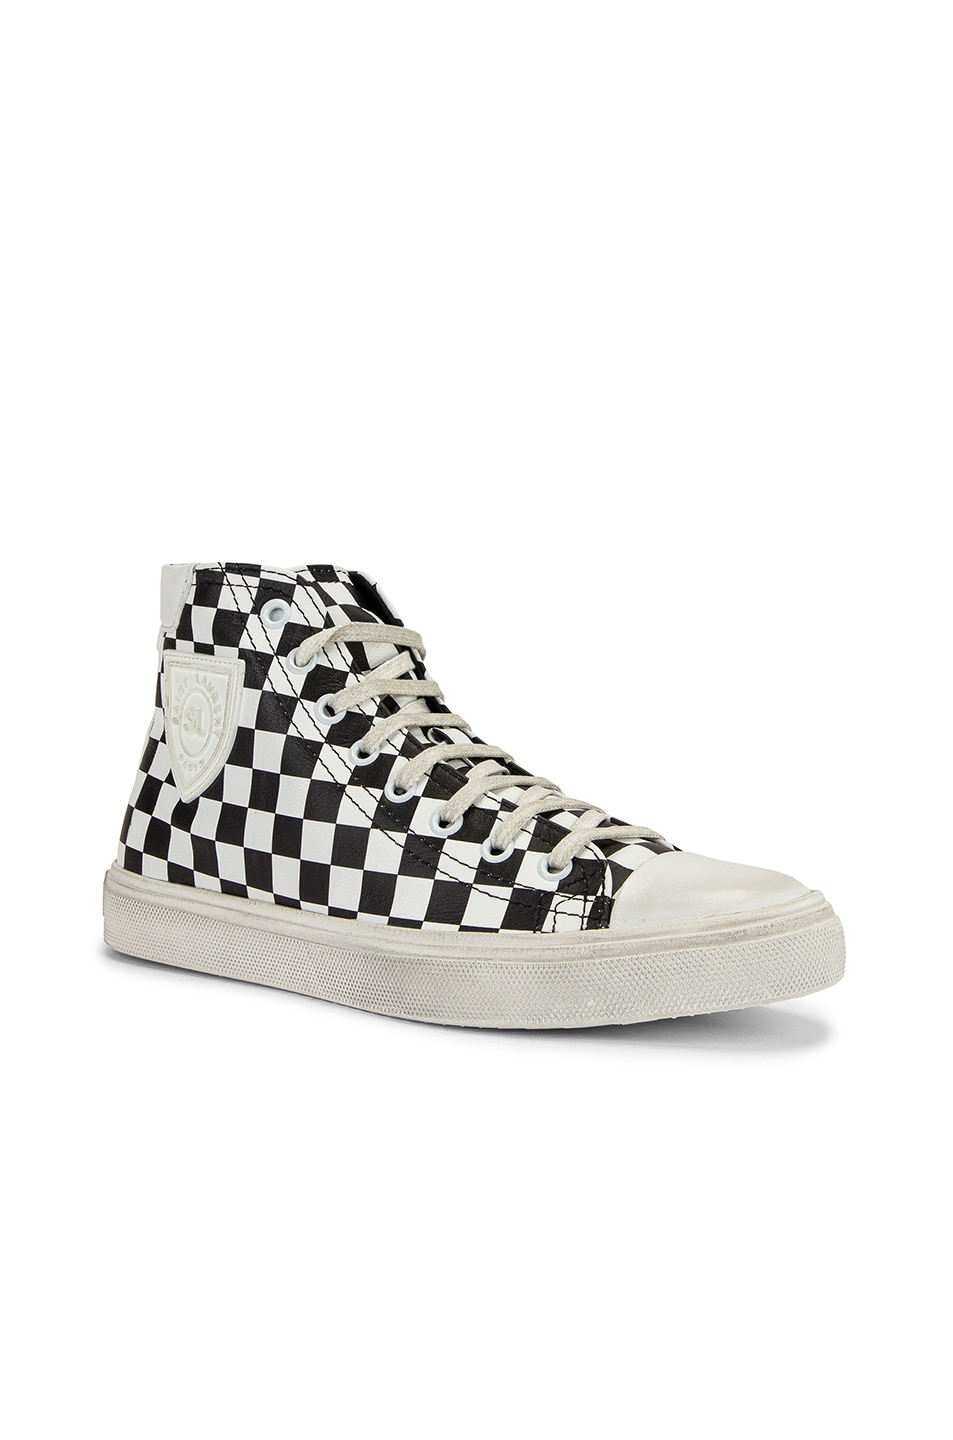 Image 2 of Saint Laurent Bedford Checkered Mid Top Sneakers in Black & White